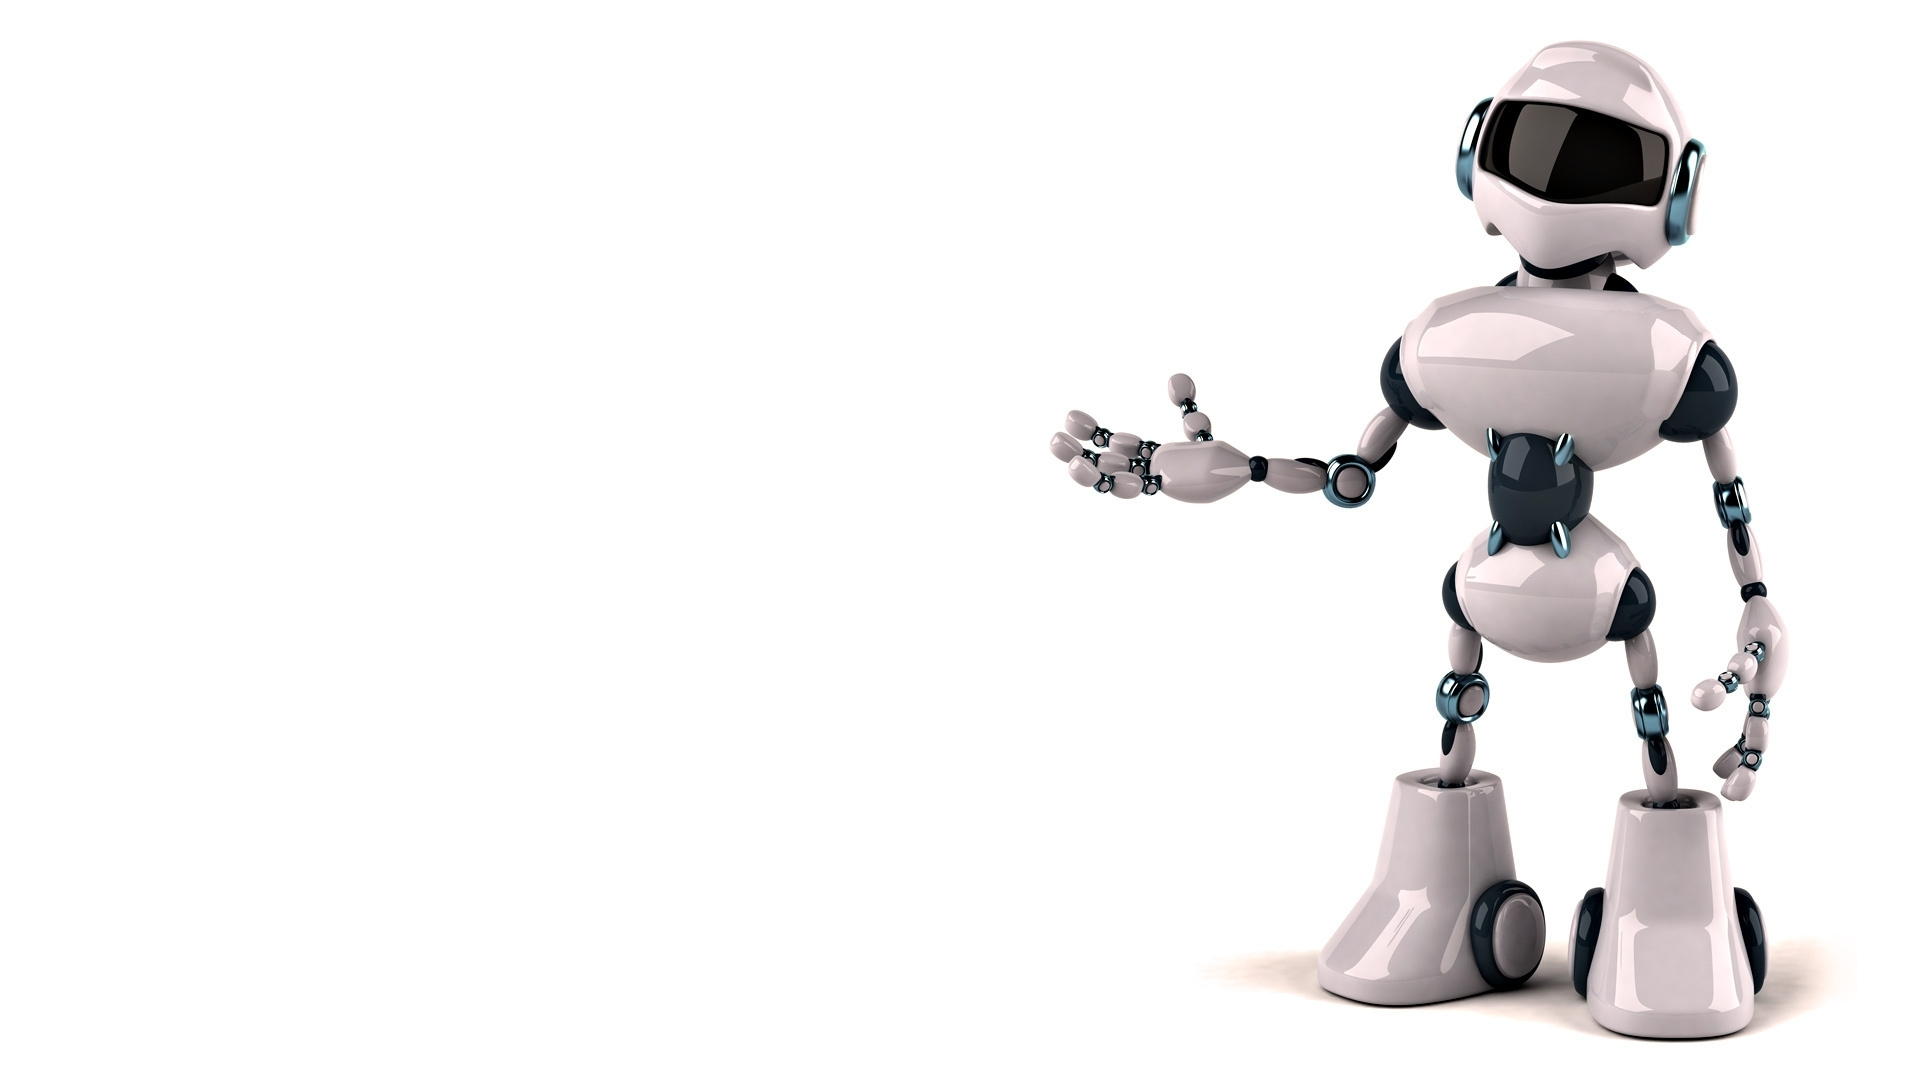 Robot Wallpapers | Best Wallpapers